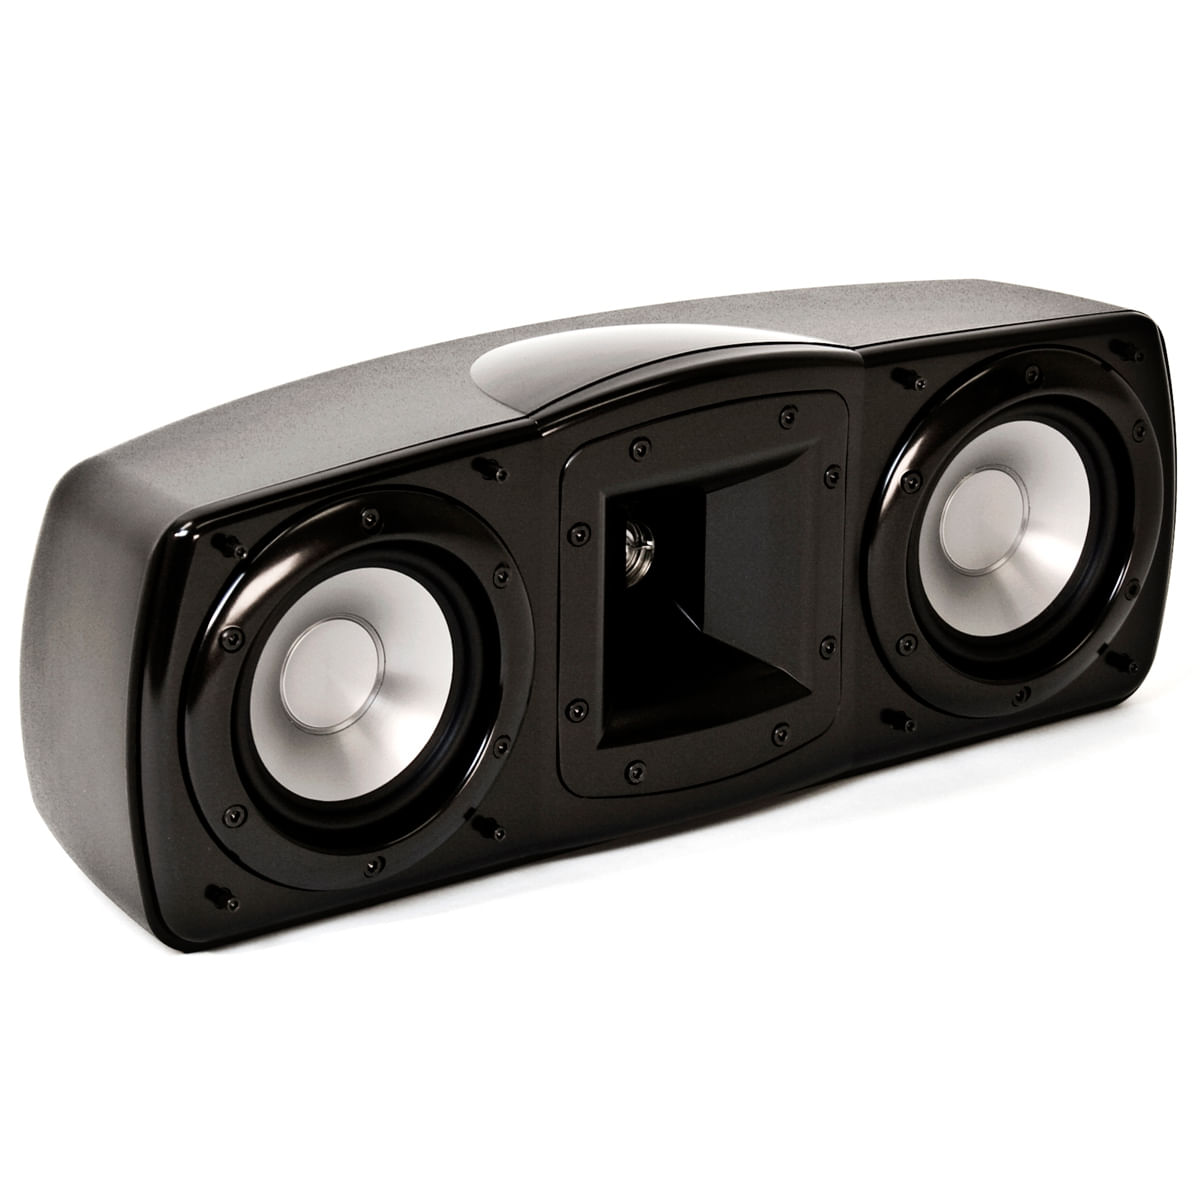 01-KLIPSCH-C10-CENTRAL-BLACK-ANGULADA